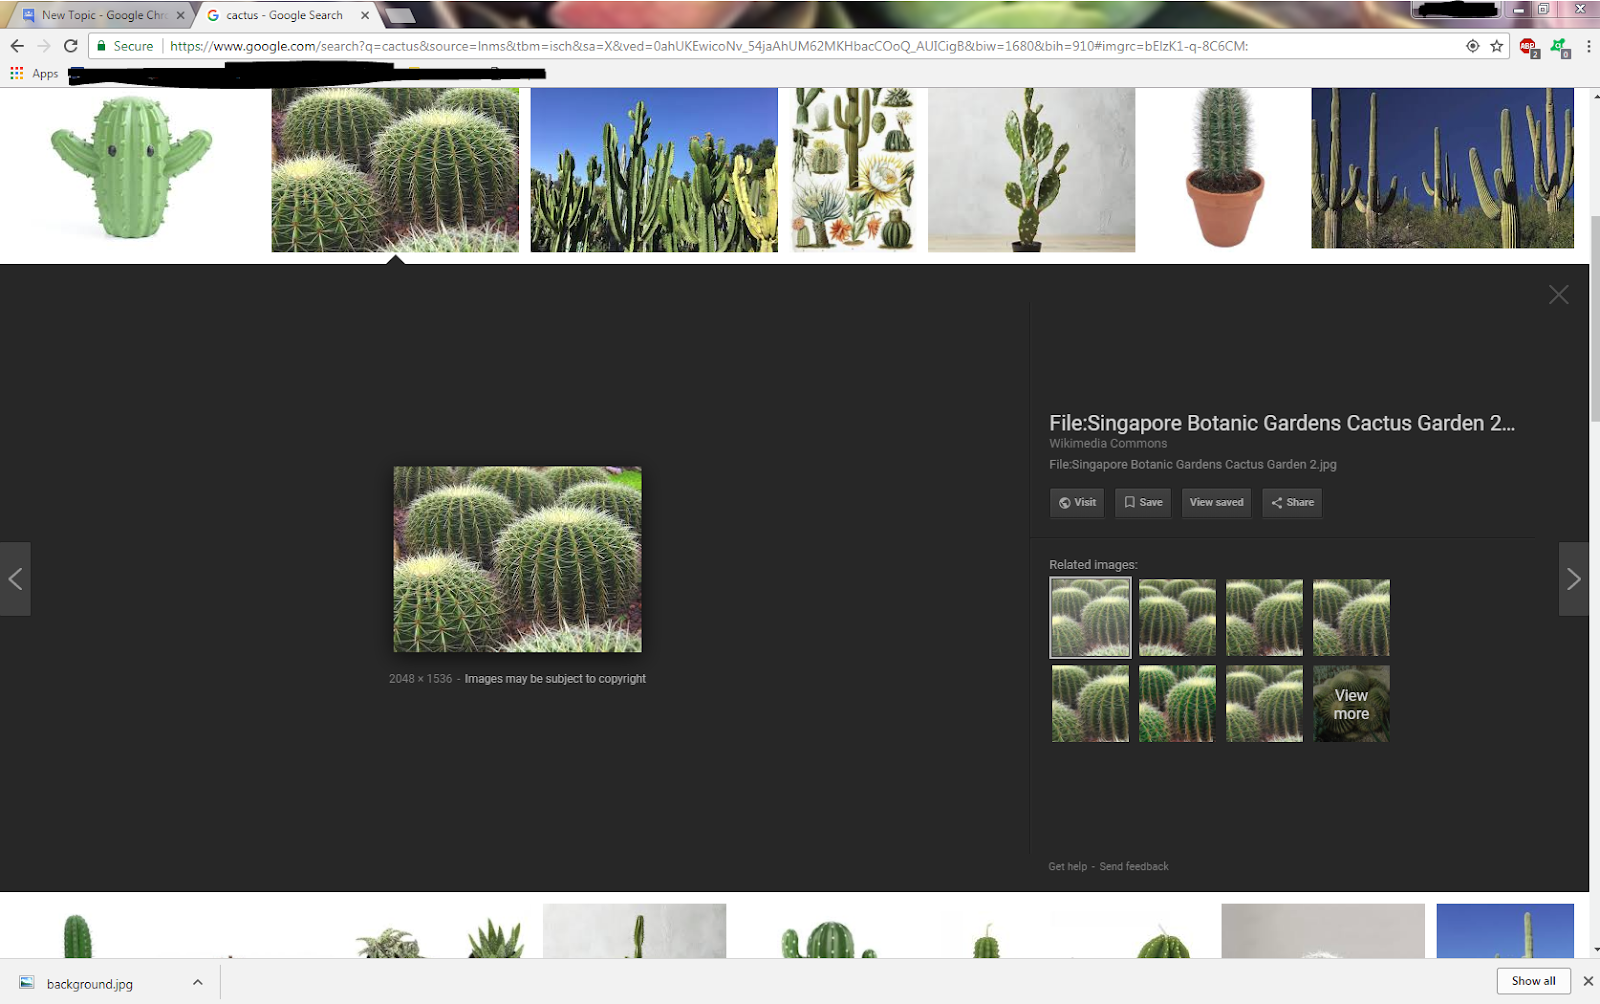 Images - Google Search Help